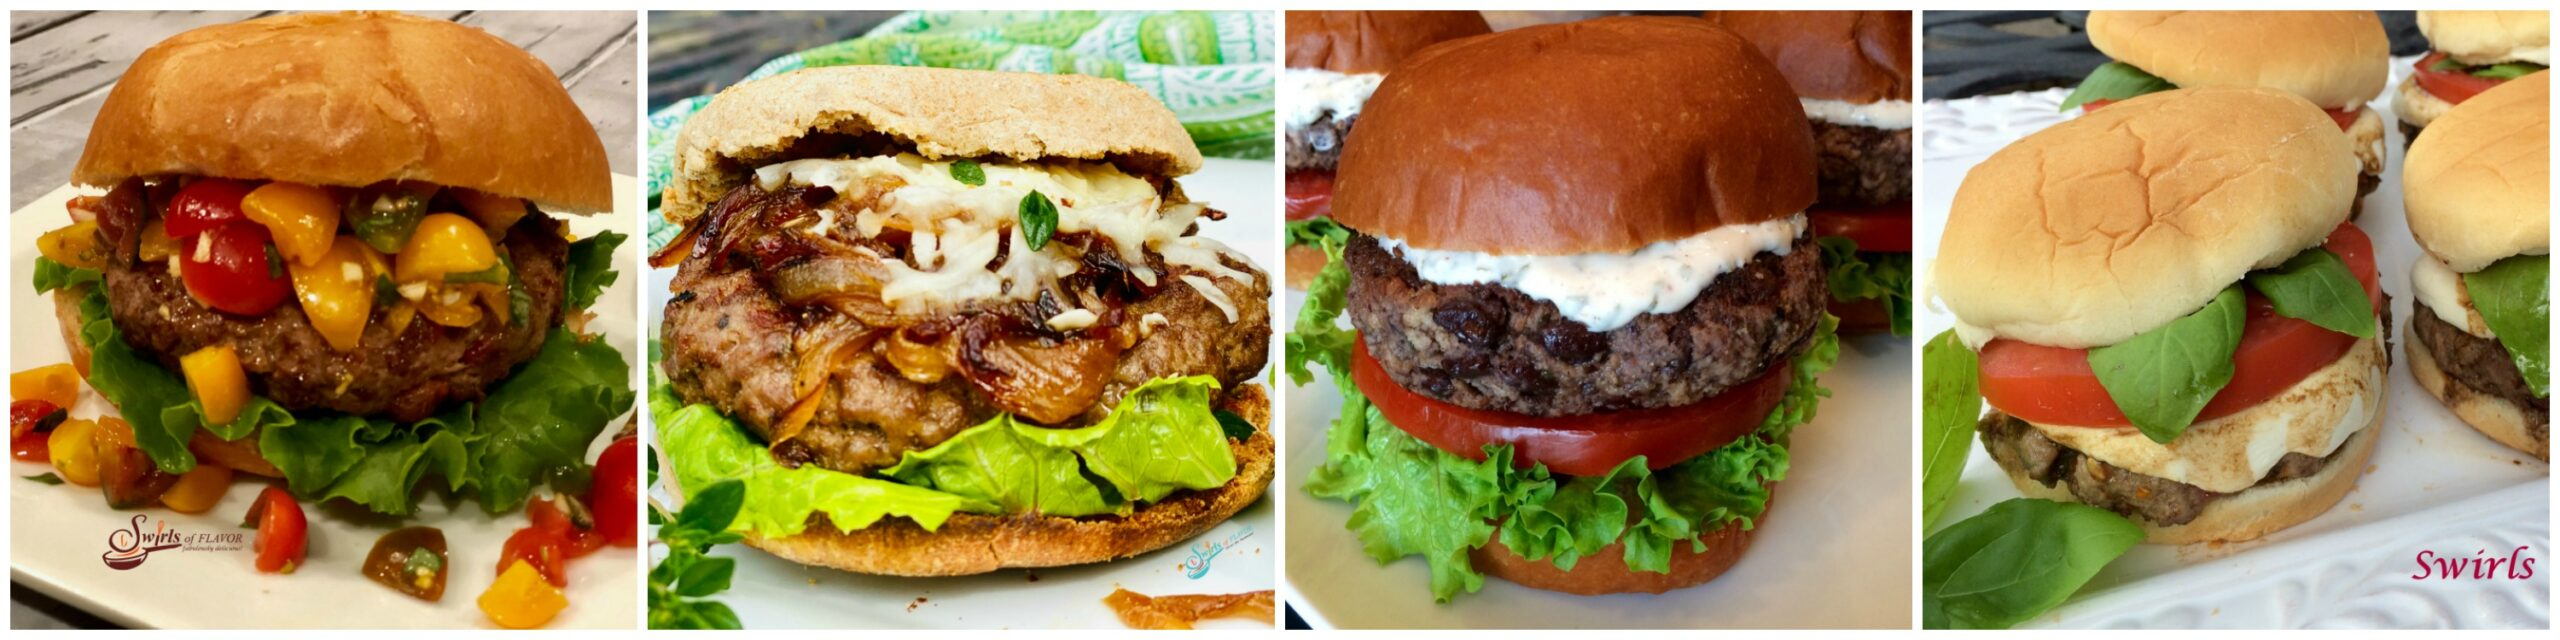 Left to Right: Bruschetta Burgers, French Onion Burgers; Black Bean Burgers; Caprrese Burgers